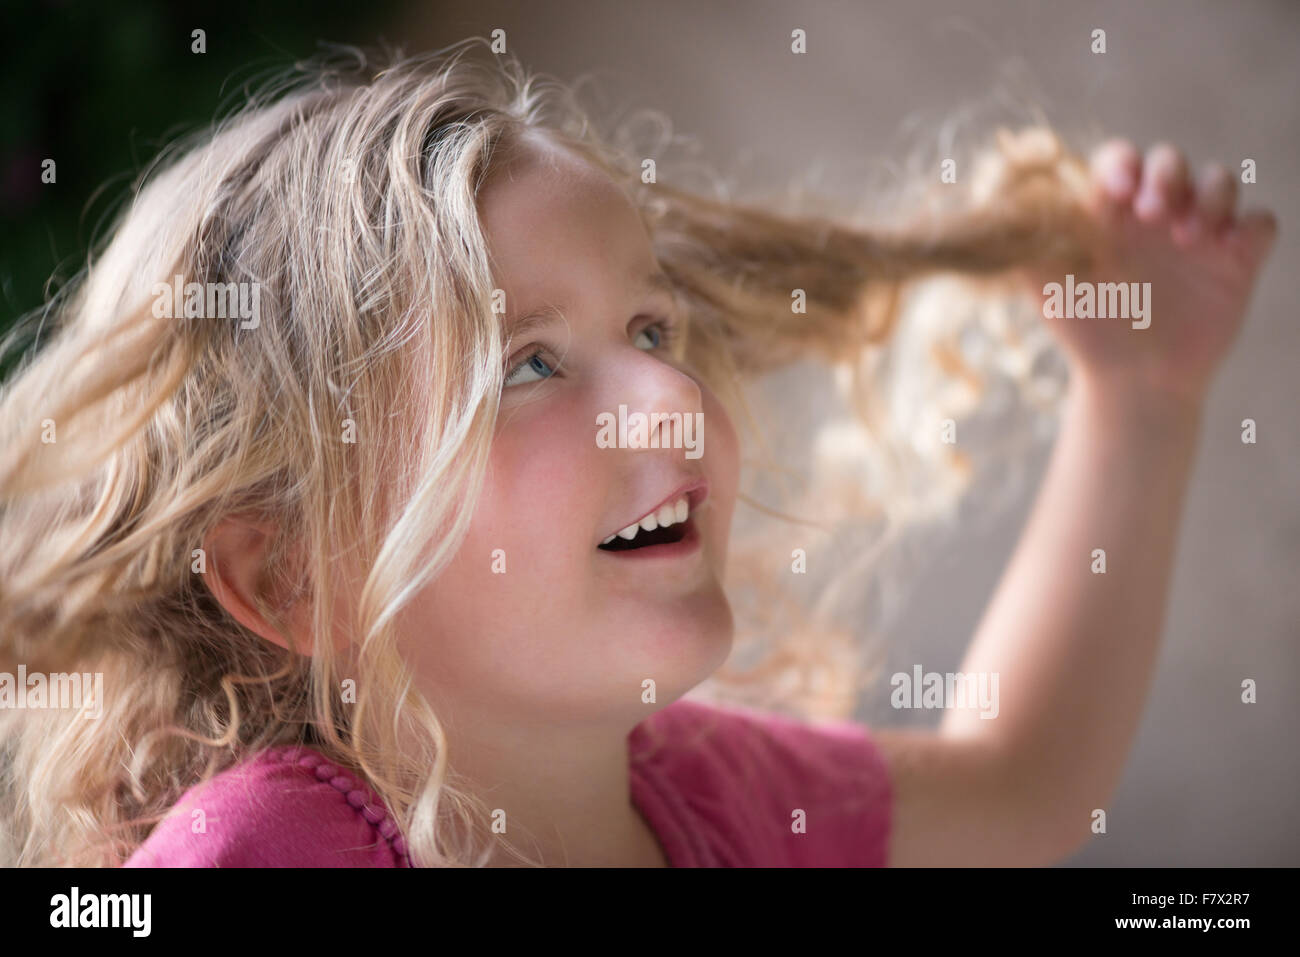 Girl twisting her hair - Stock Image